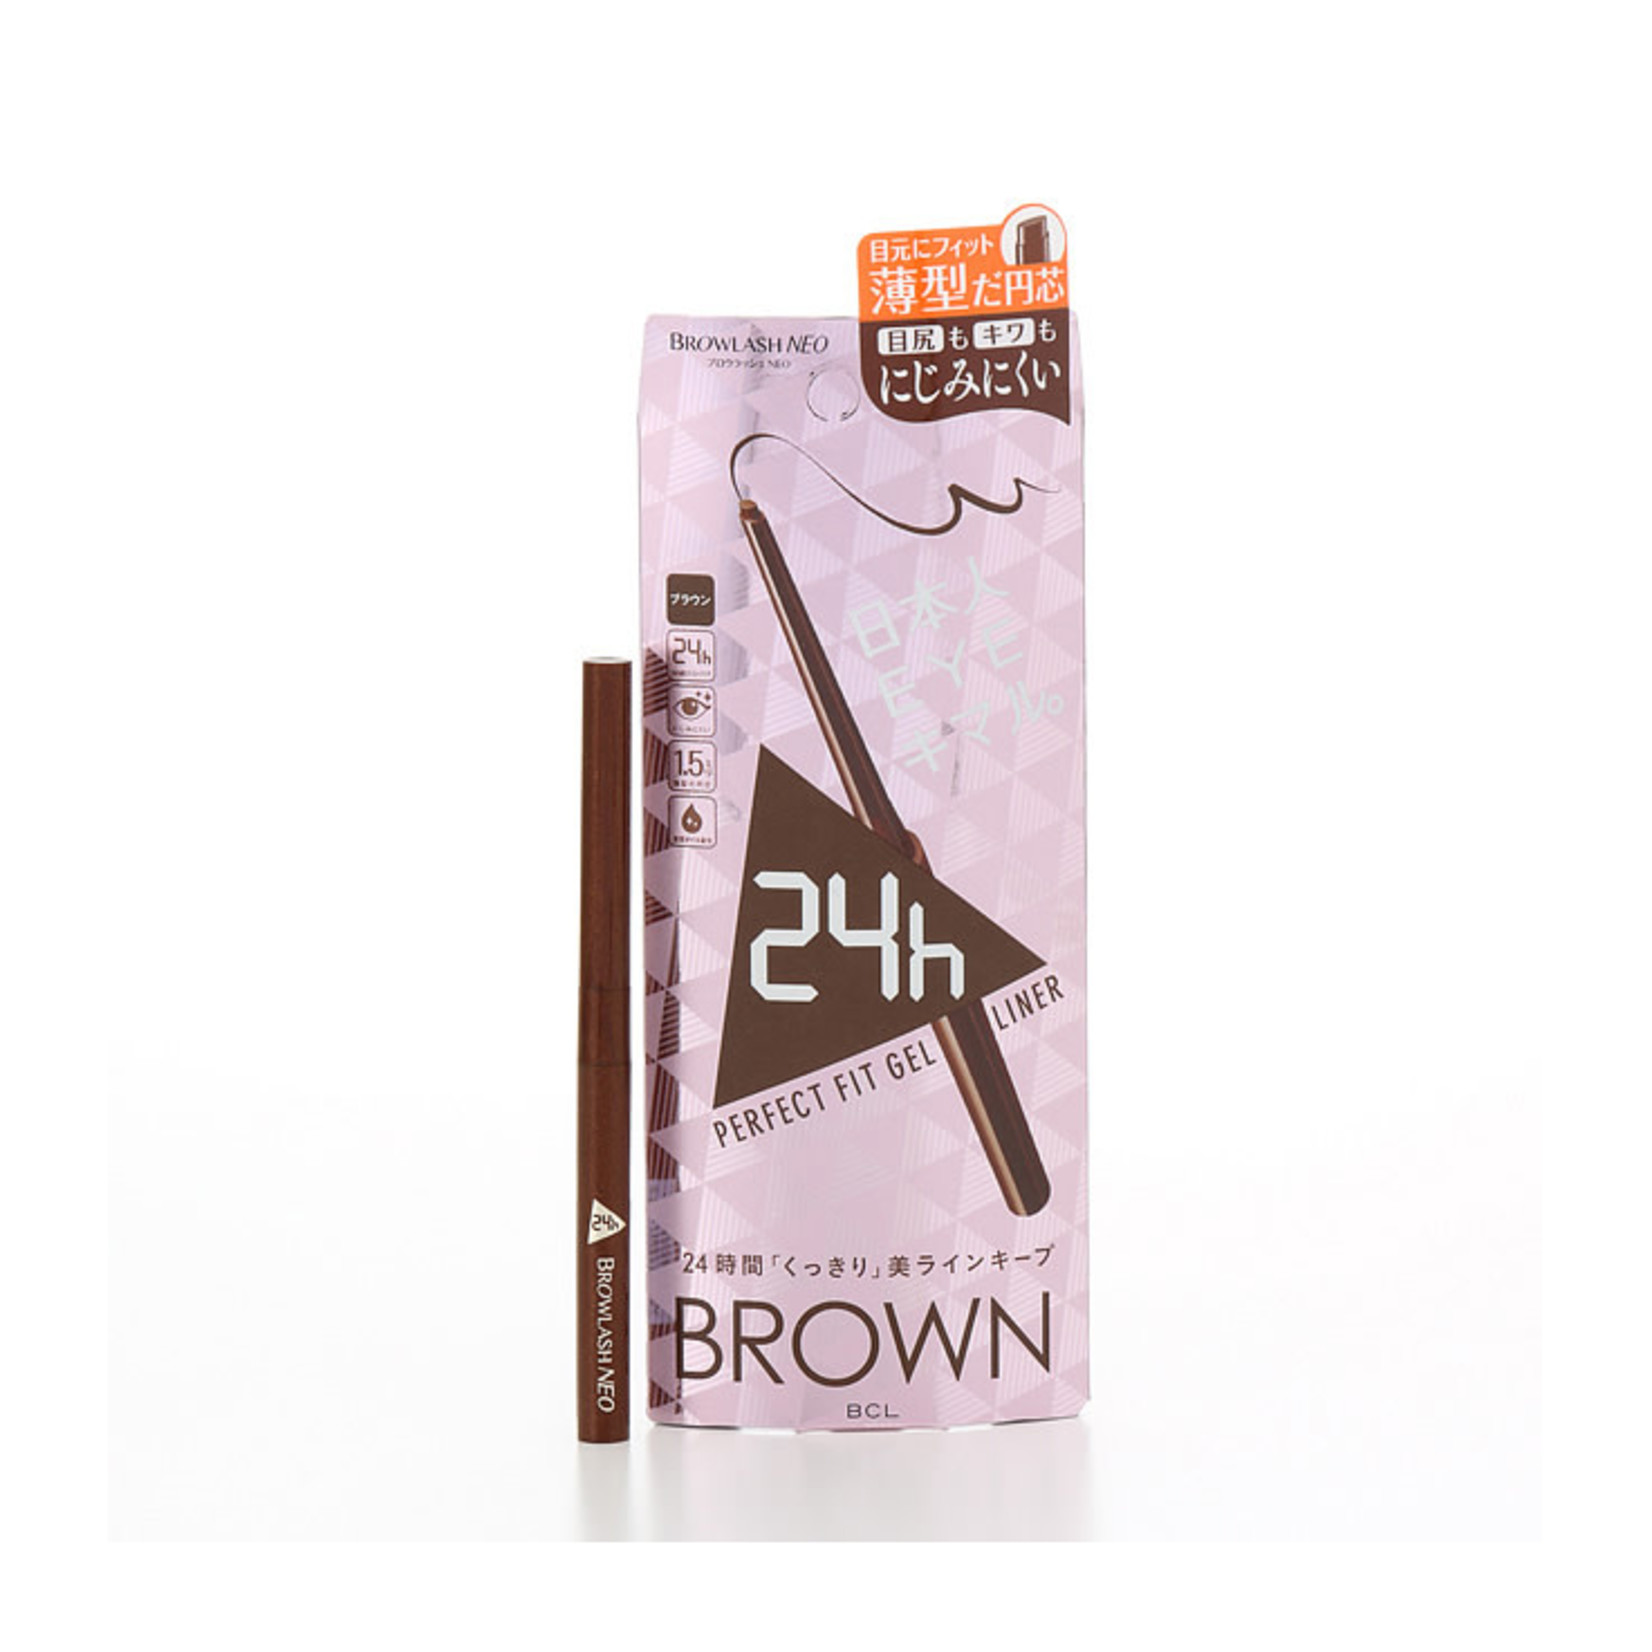 BCL BCL Browlash Neo Perfect Gel Liner Brown